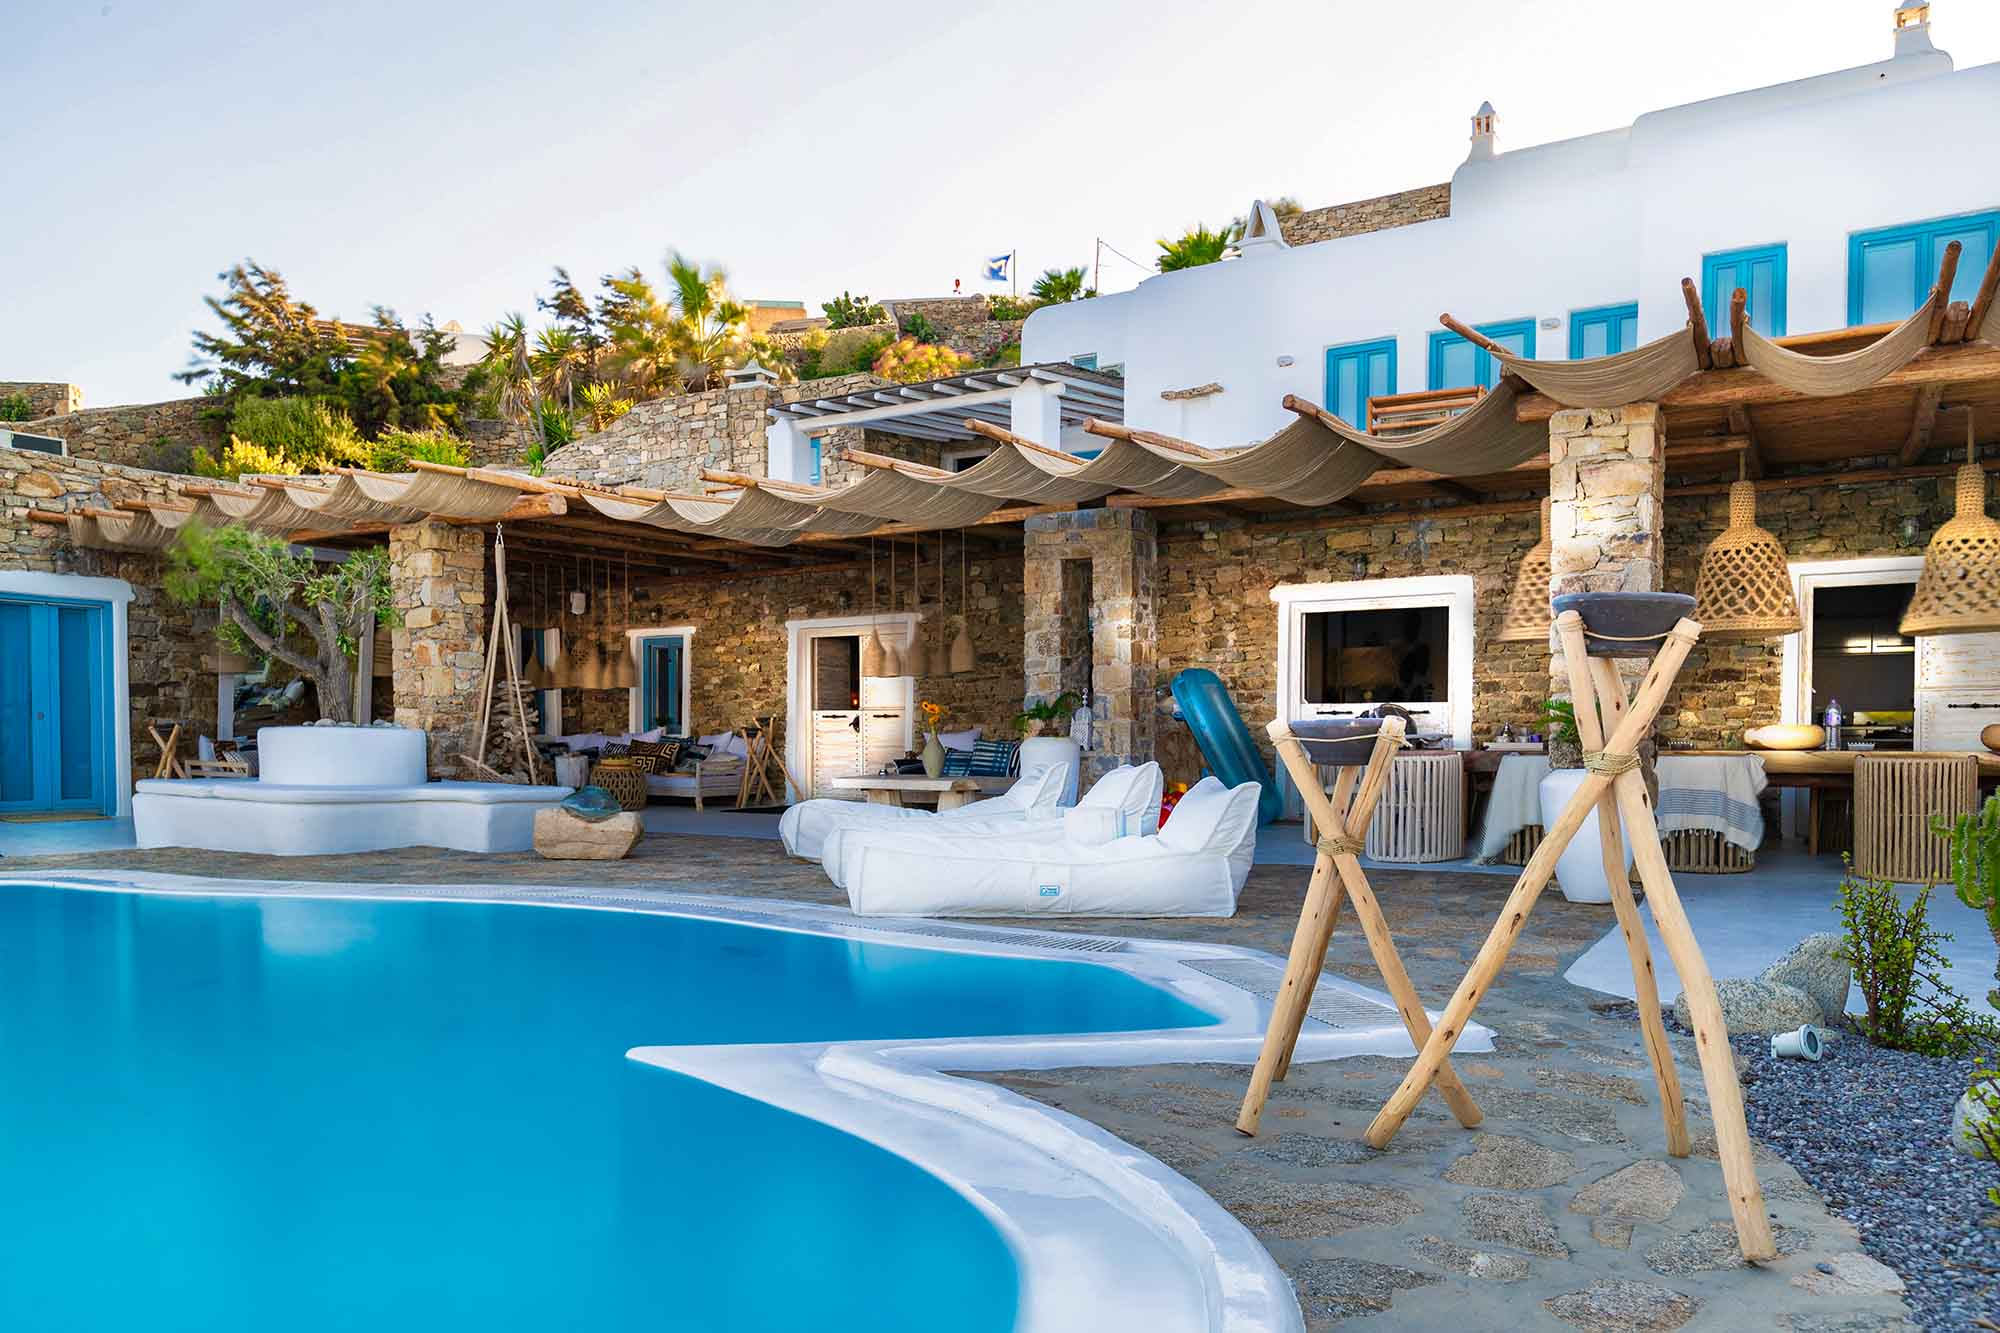 RENT A LUXURIOUS VILLA BY THE SEA IN MYKONOS - VILLA KARKOS - by the poolside